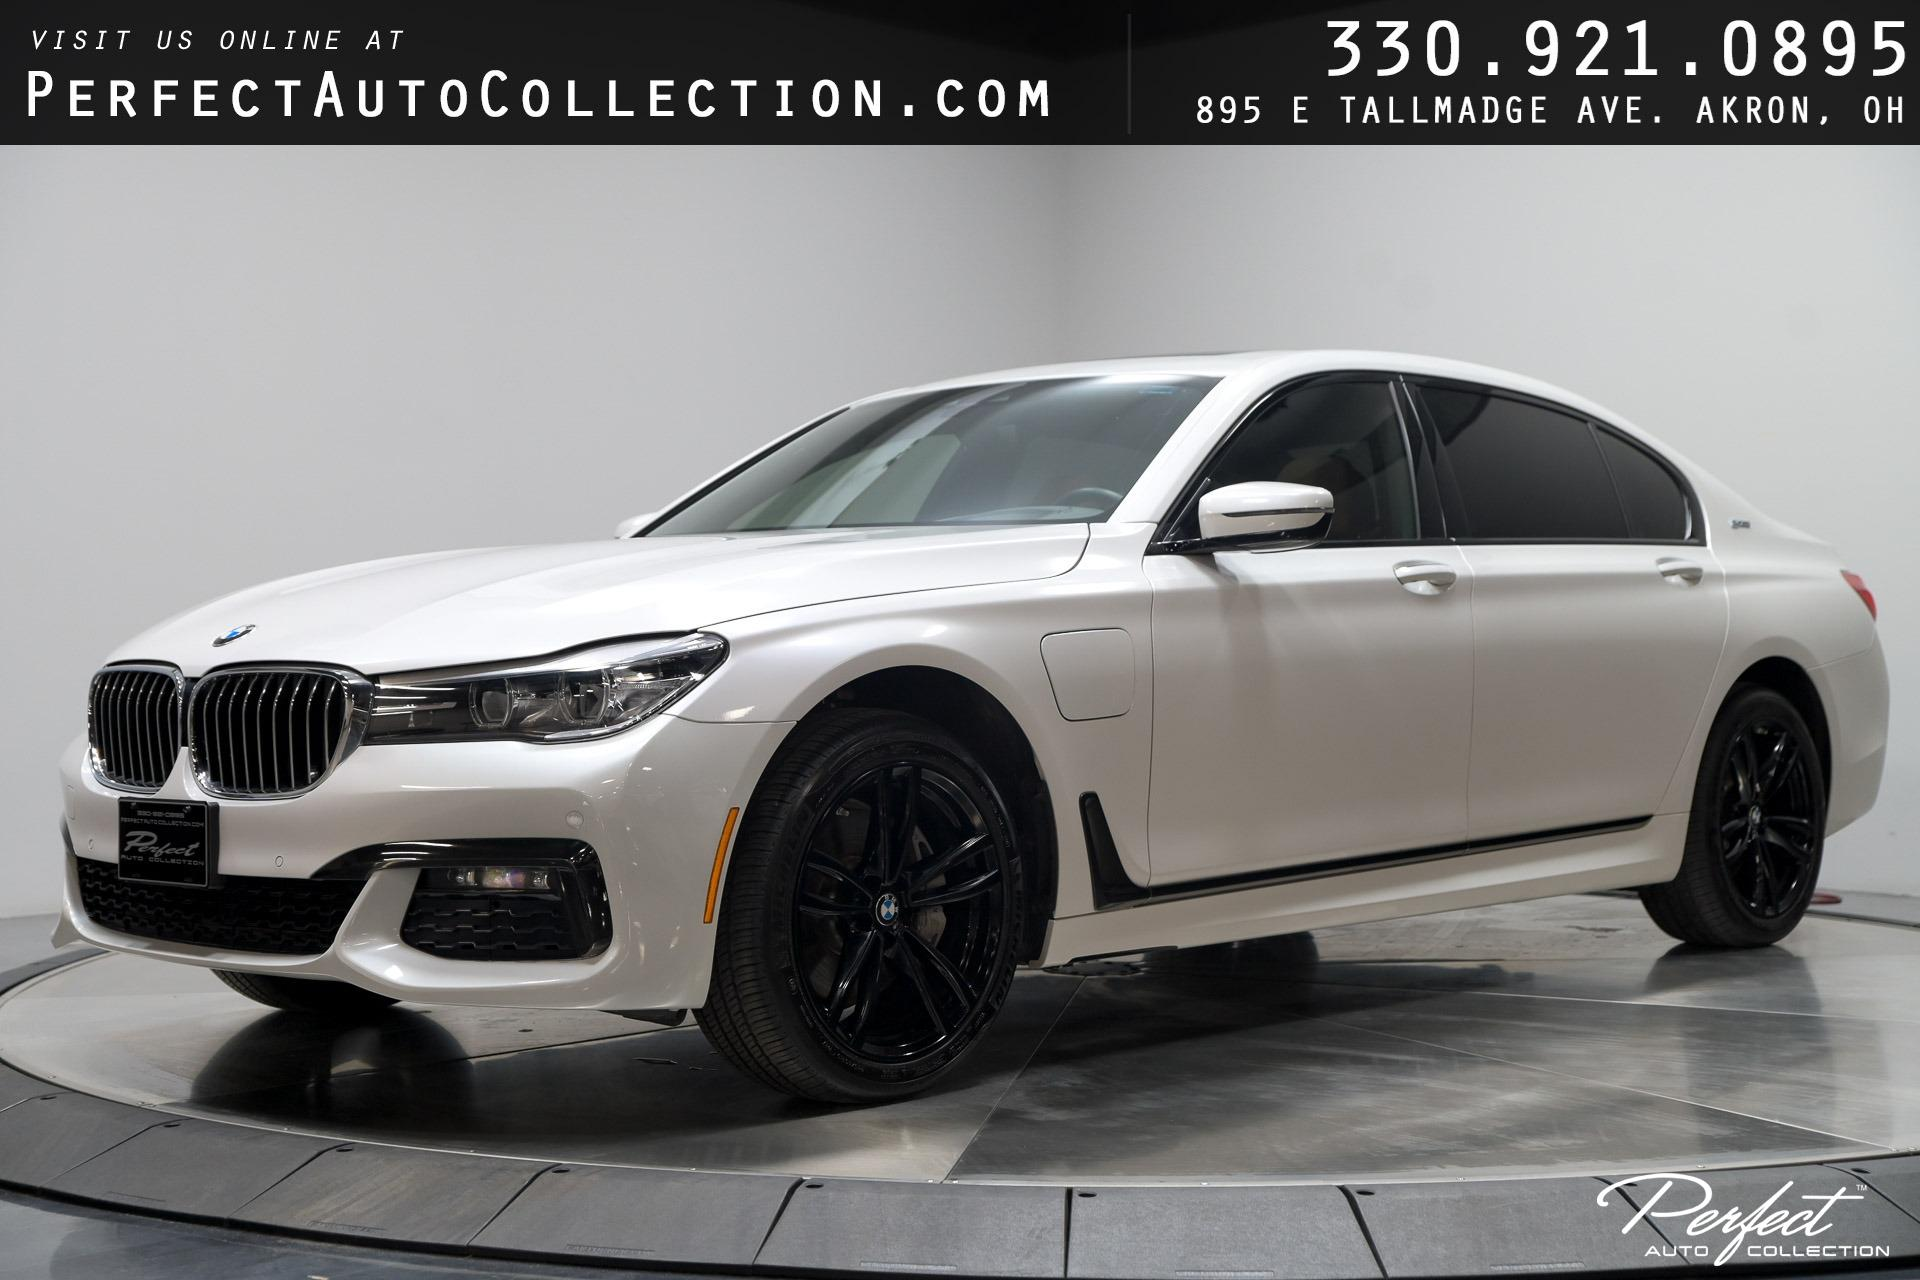 Used 2018 BMW 7 Series 740e xDrive iPerformance for sale $55,895 at Perfect Auto Collection in Akron OH 44310 1